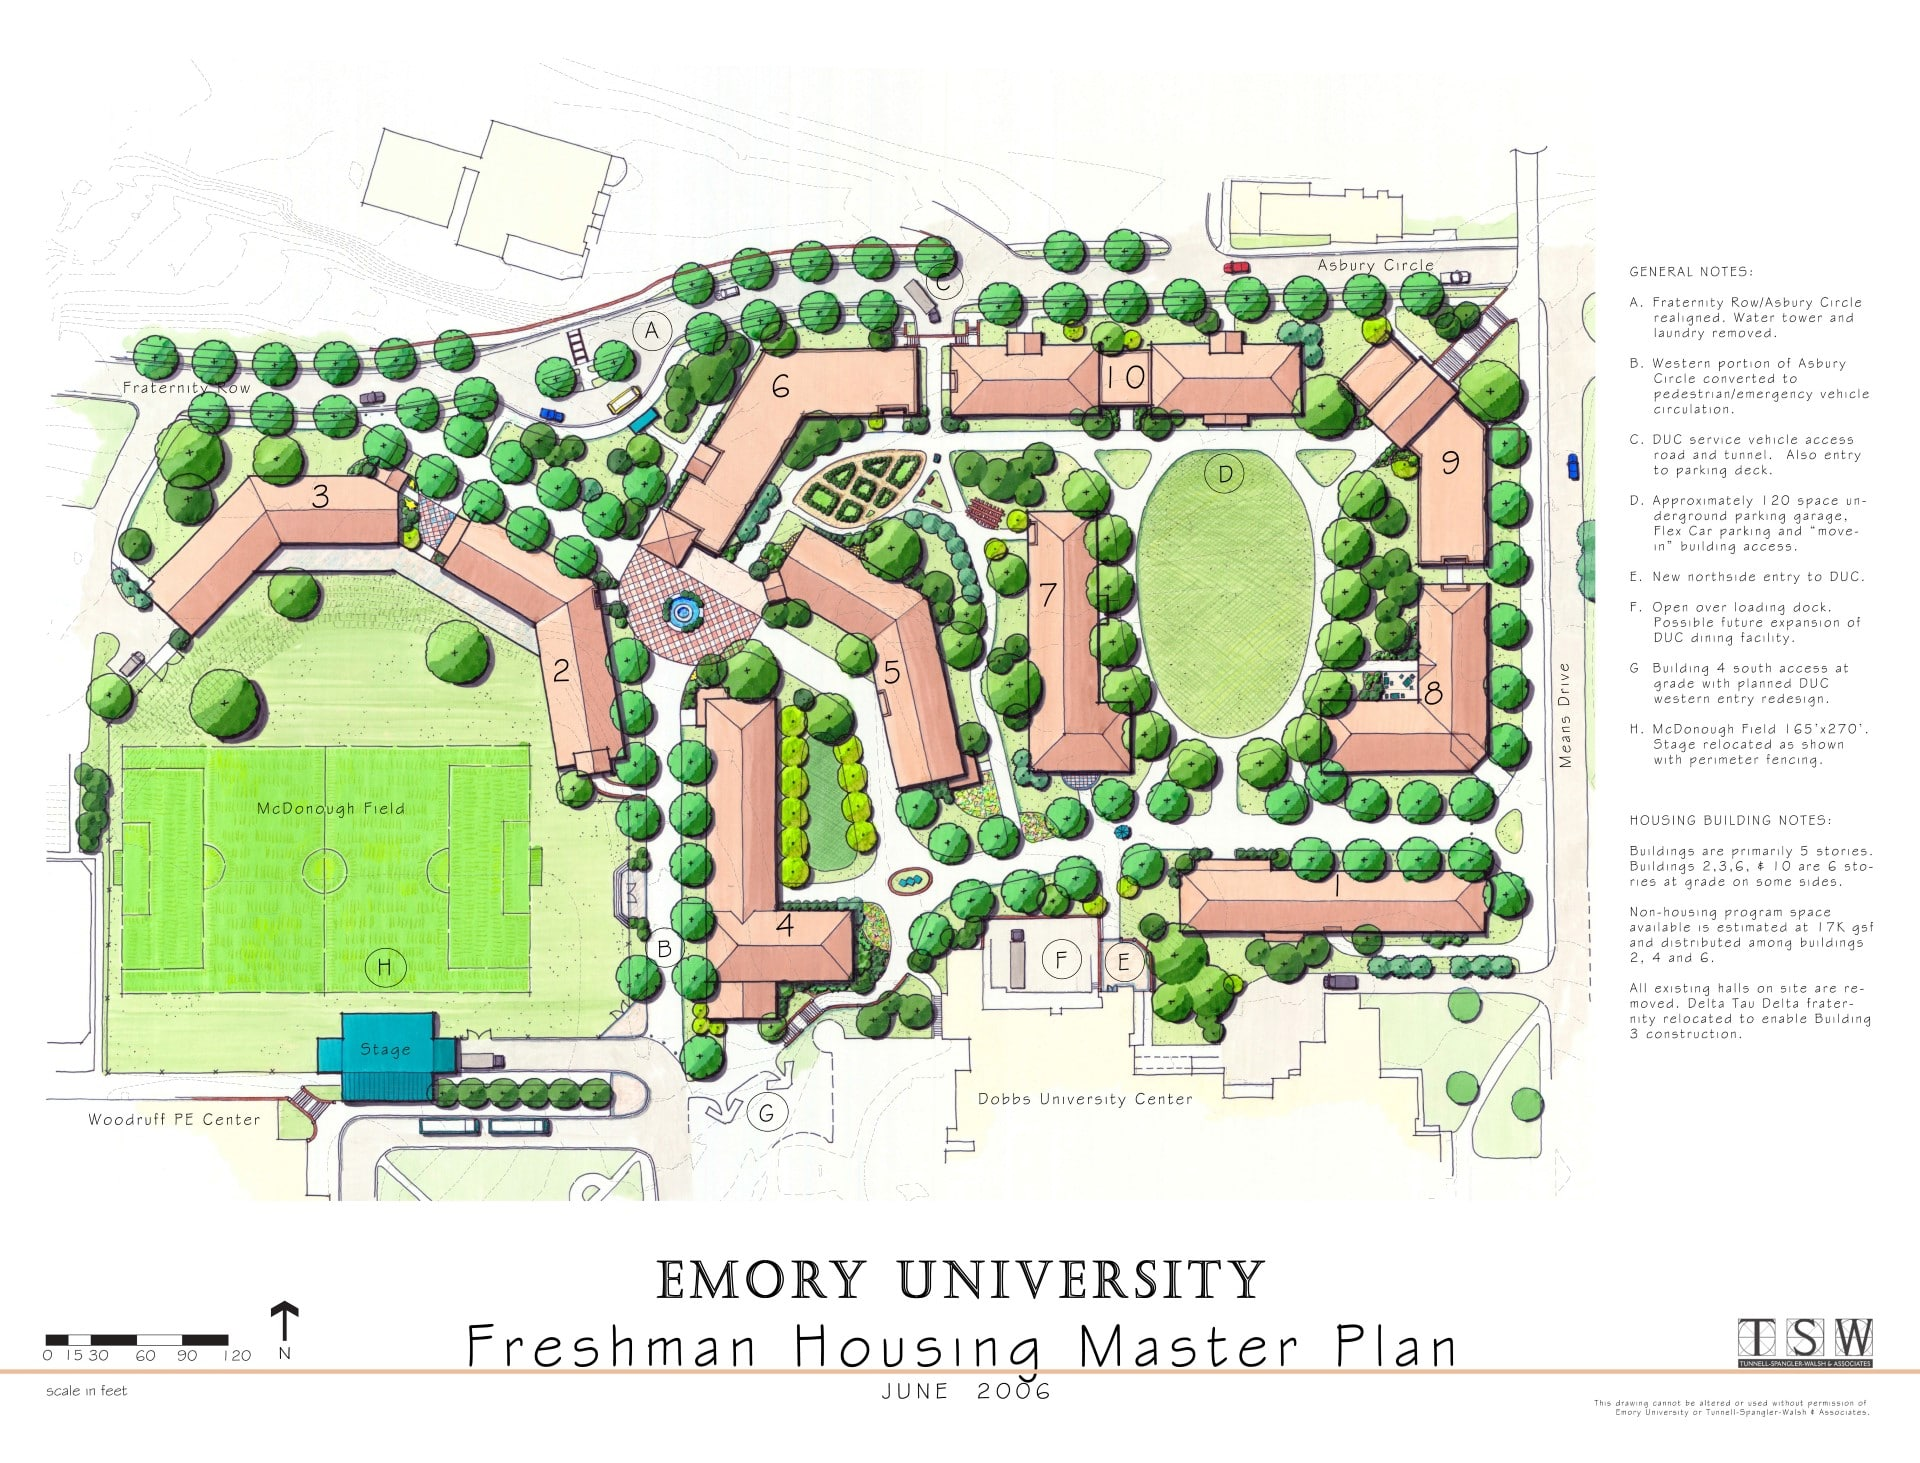 Emory University Freshman Housing